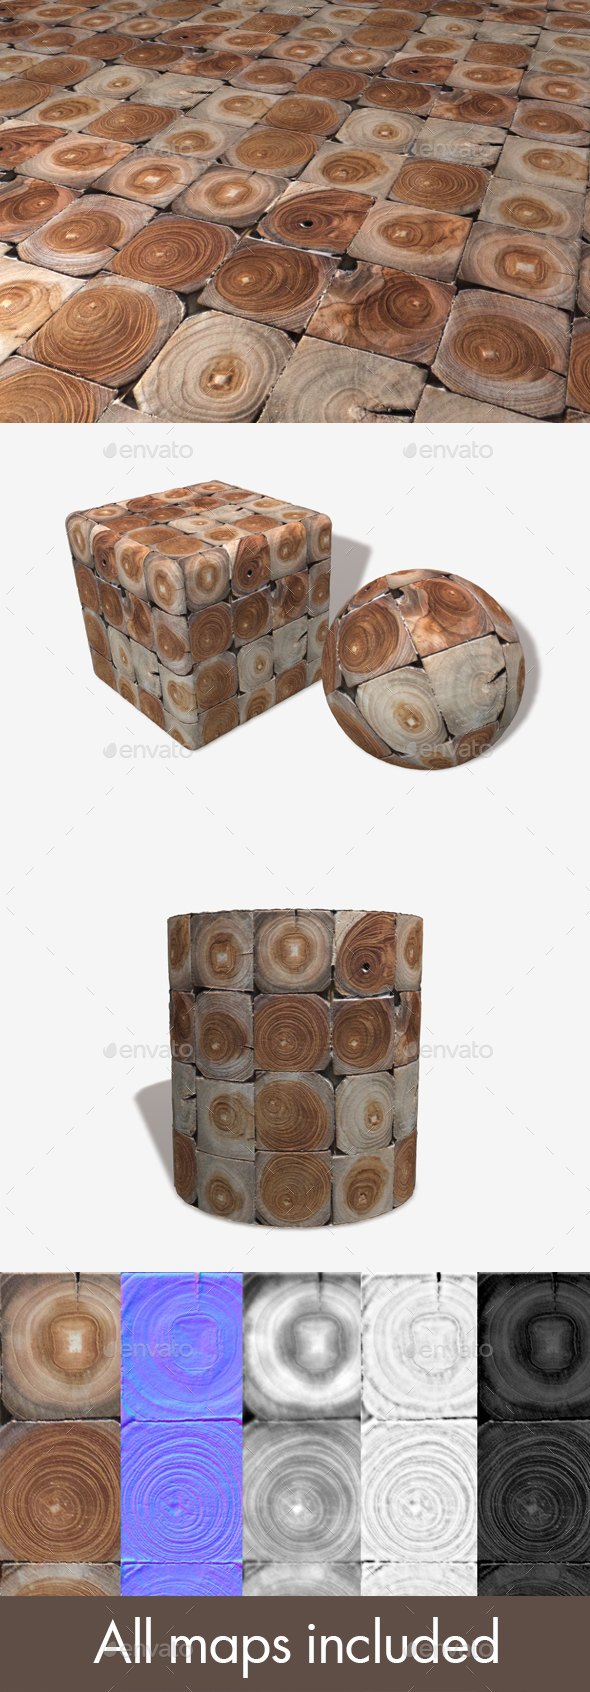 Decorative Wooden Tiles Seamless Texture - 3DOcean Item for Sale